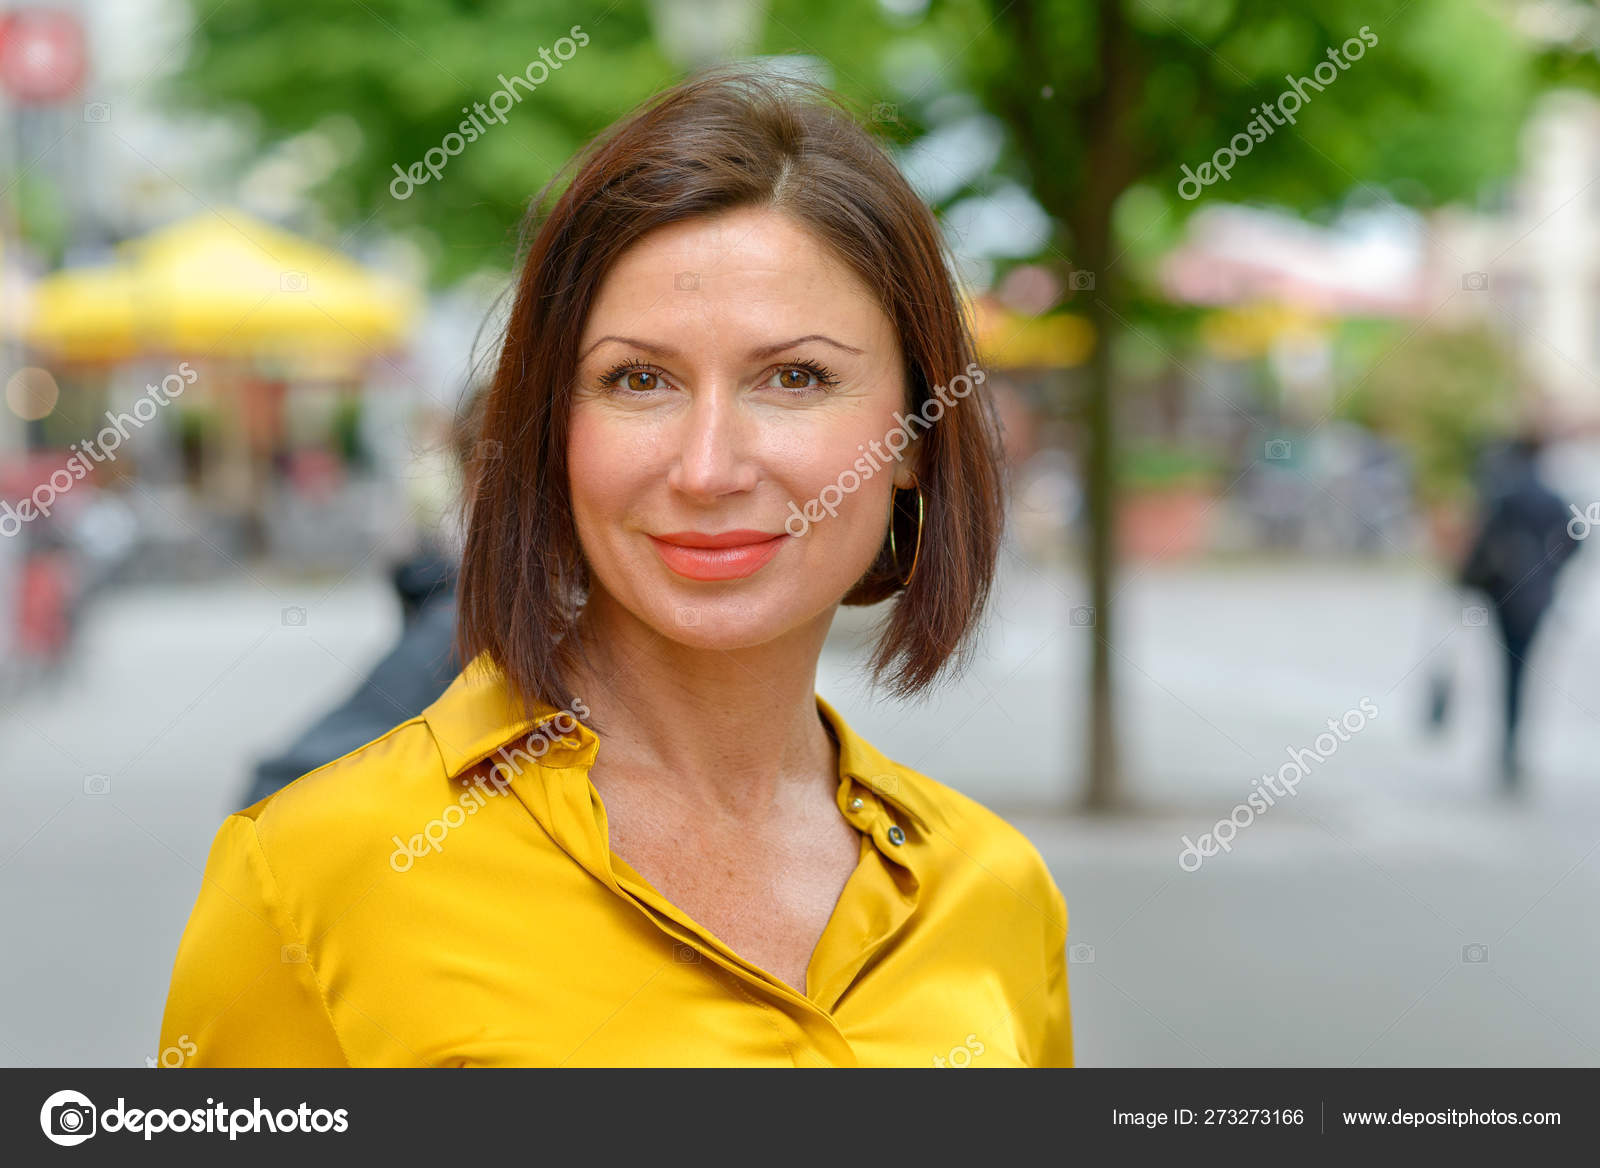 Attractive Mature Woman Enjoying A Day In Town Stock Photo